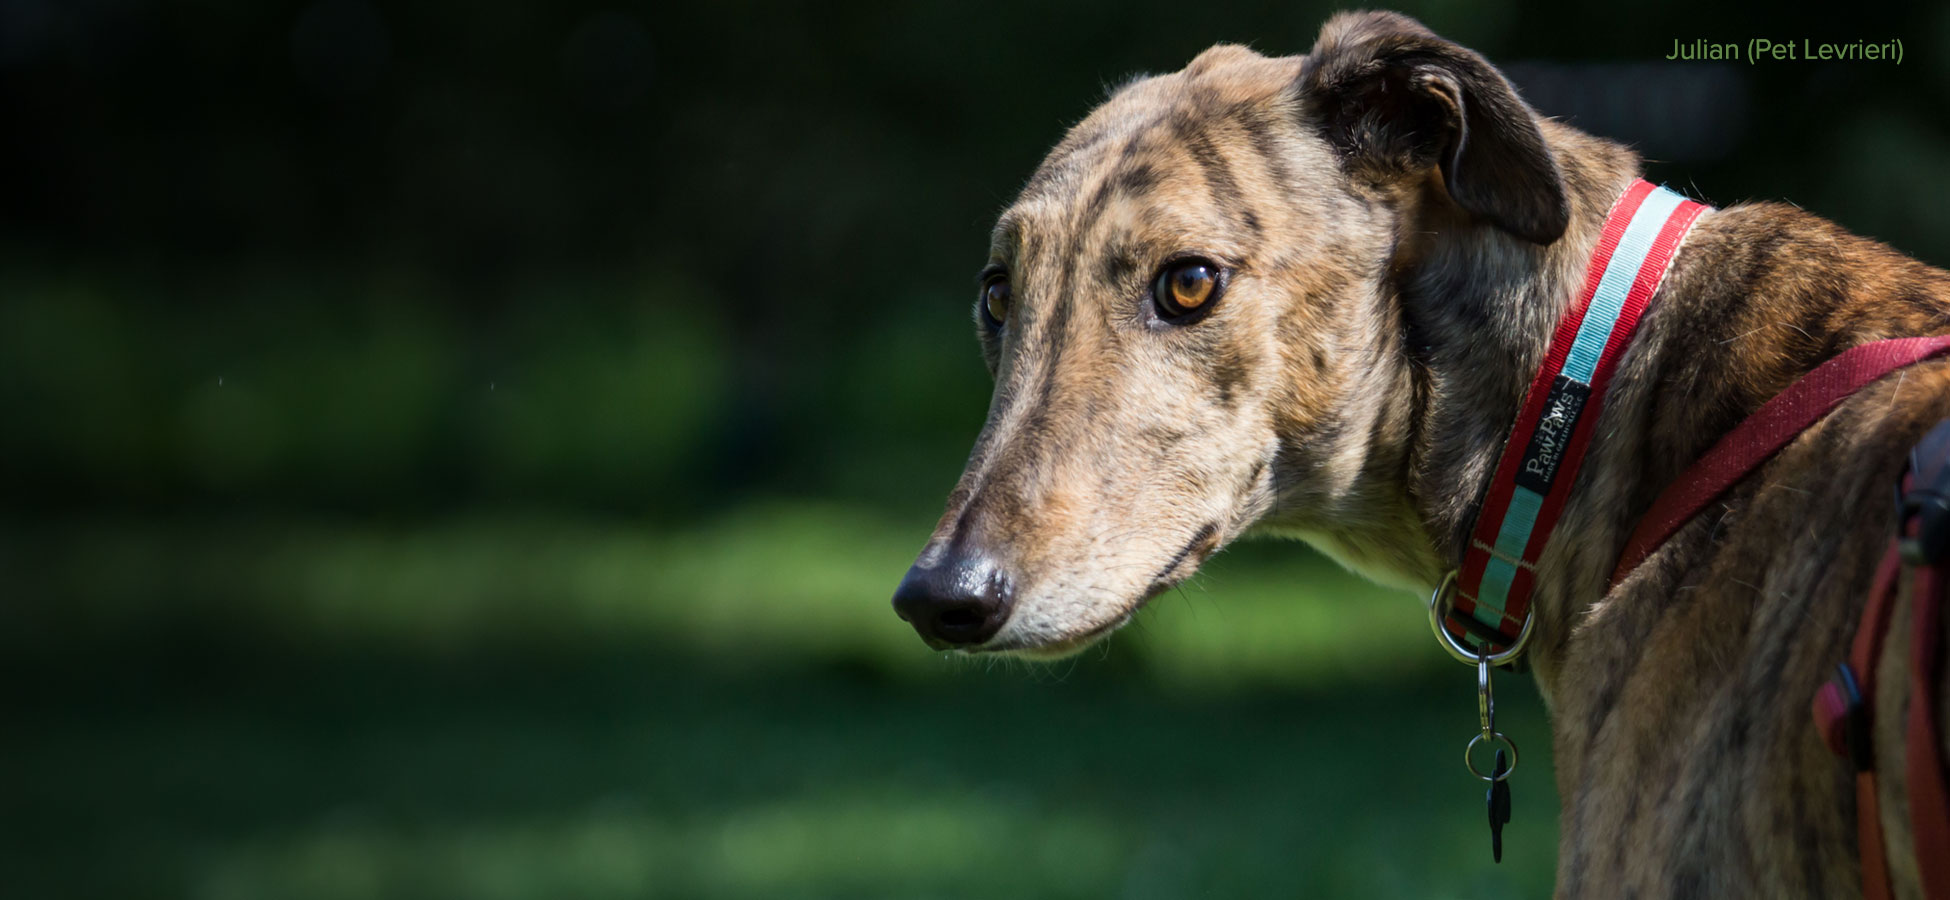 Julian the greyhound by Pet levrieri